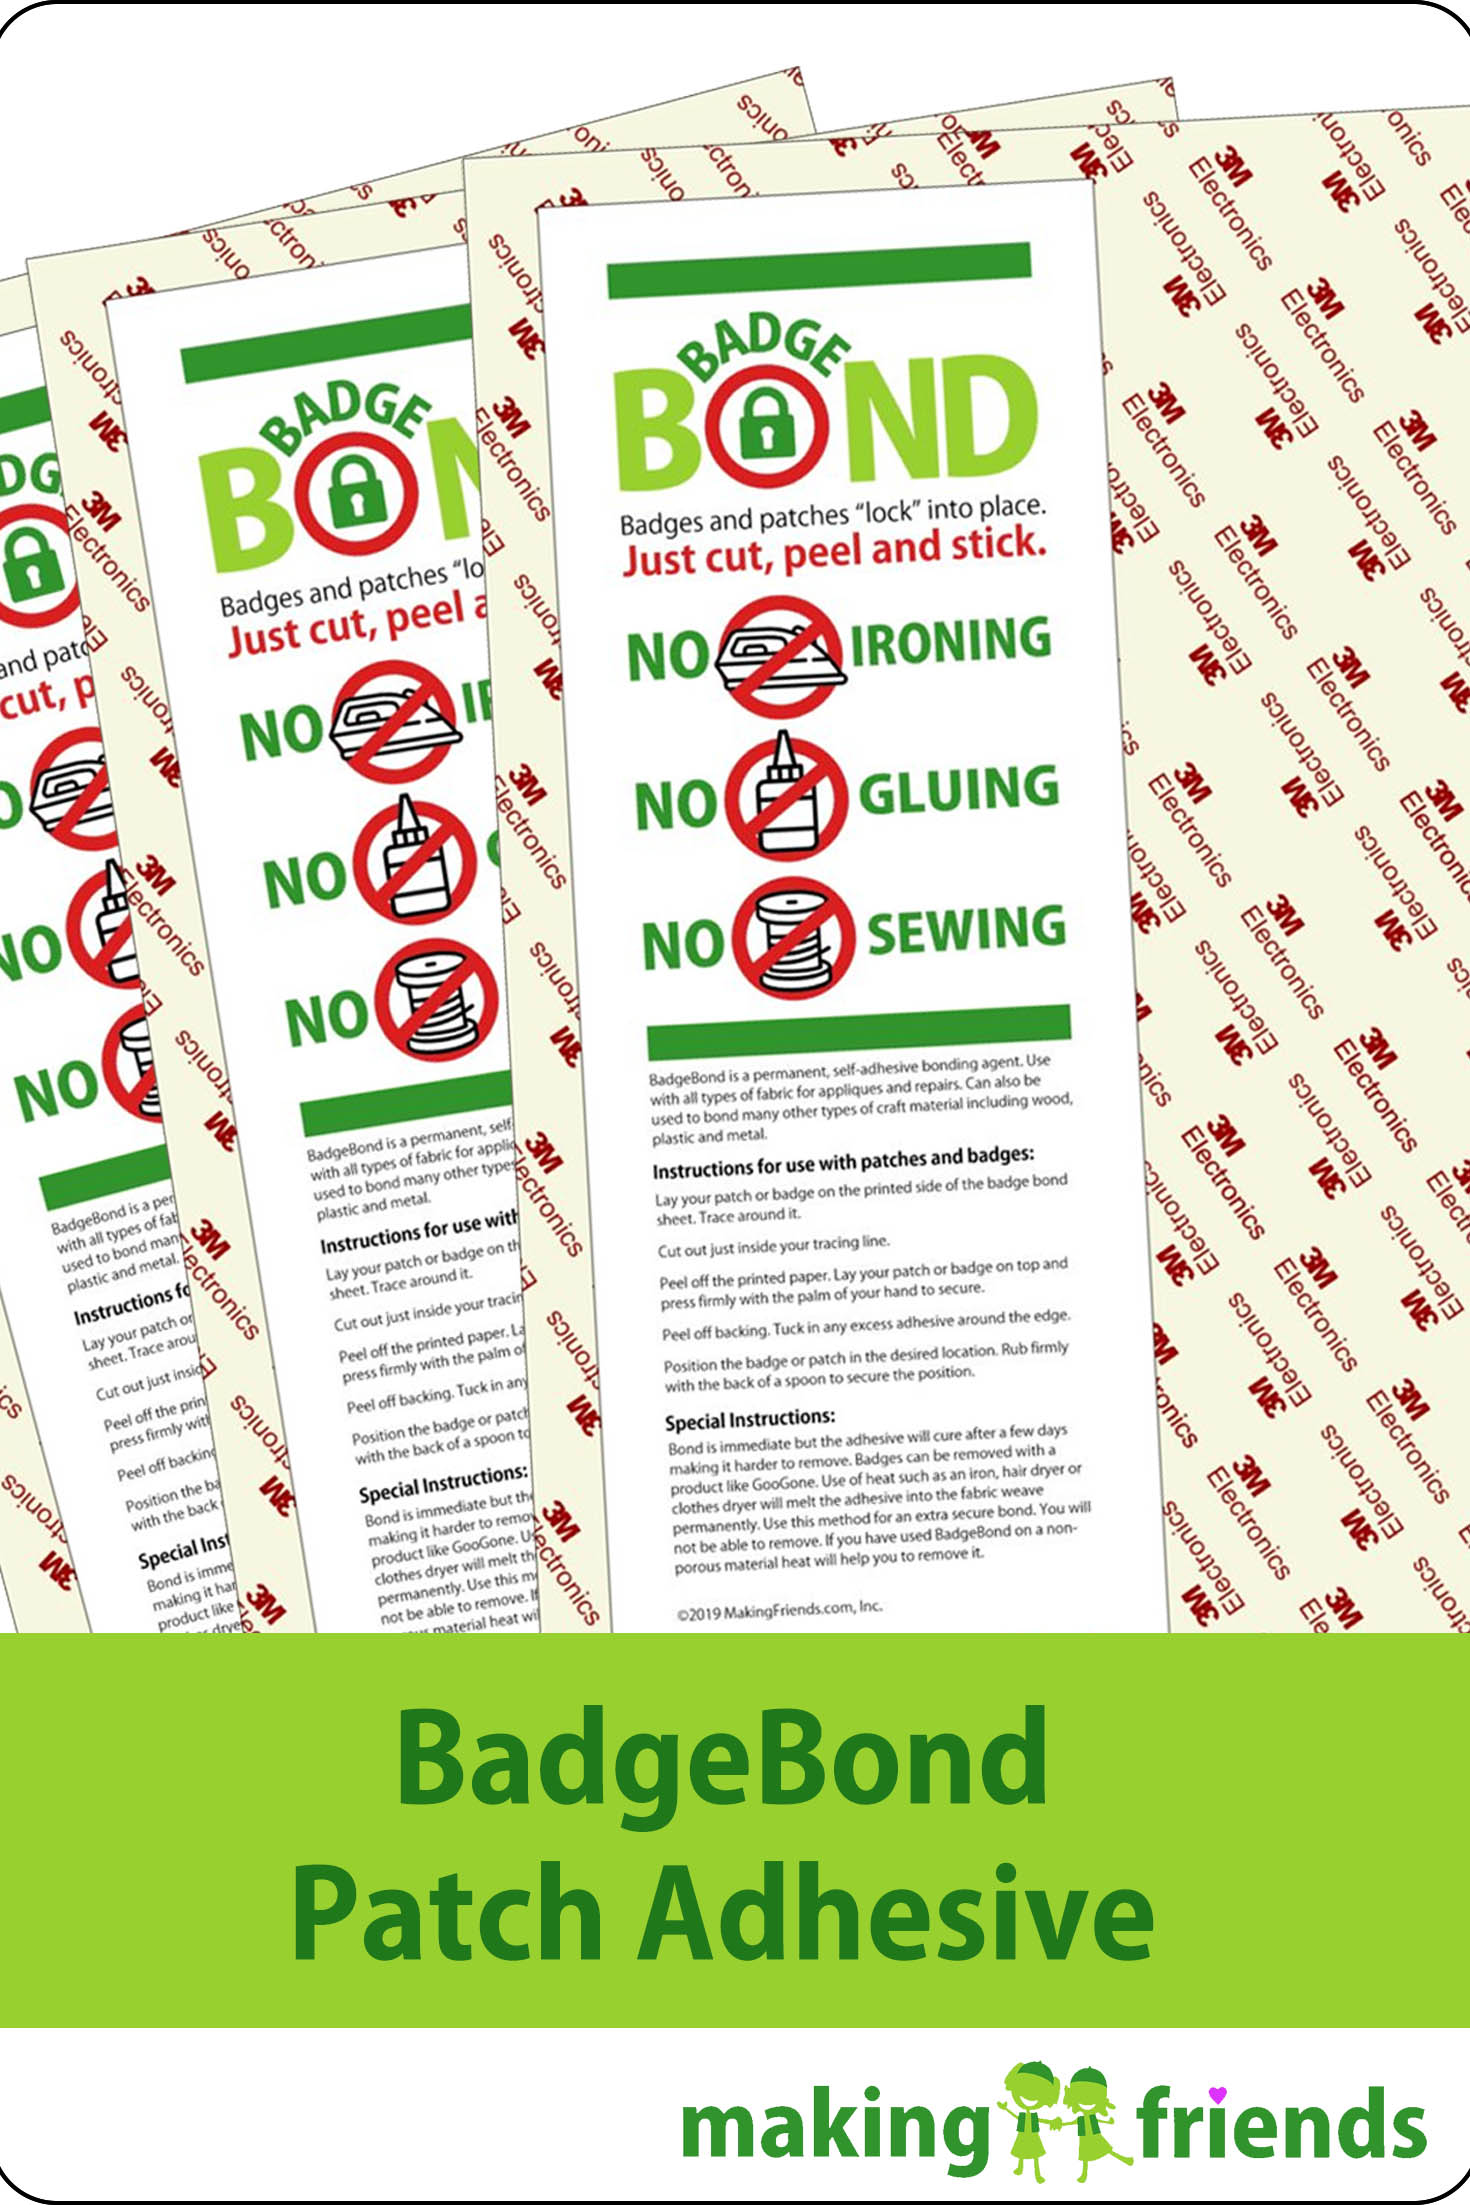 BadgeBond Patch Adhesive Same great outcome as the competition at a much lower price and free shipping. We guarantee it! Get a free full sized sheet free with your order of $100 or more. via @gsleader411